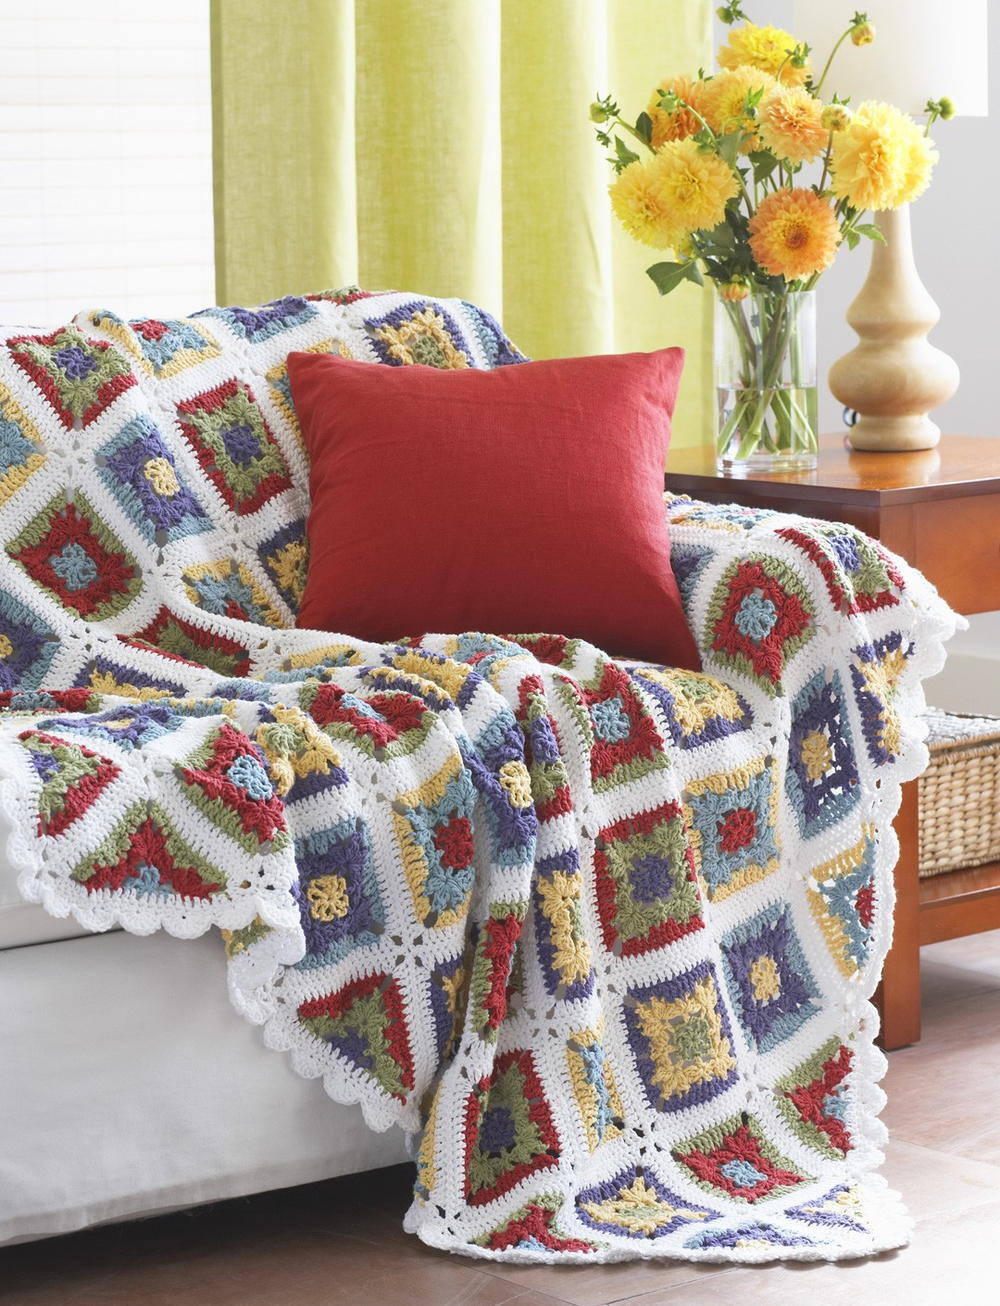 Awesome Country Charm Crochet Blanket Pattern Motif Blanket Of Contemporary 49 Models Motif Blanket